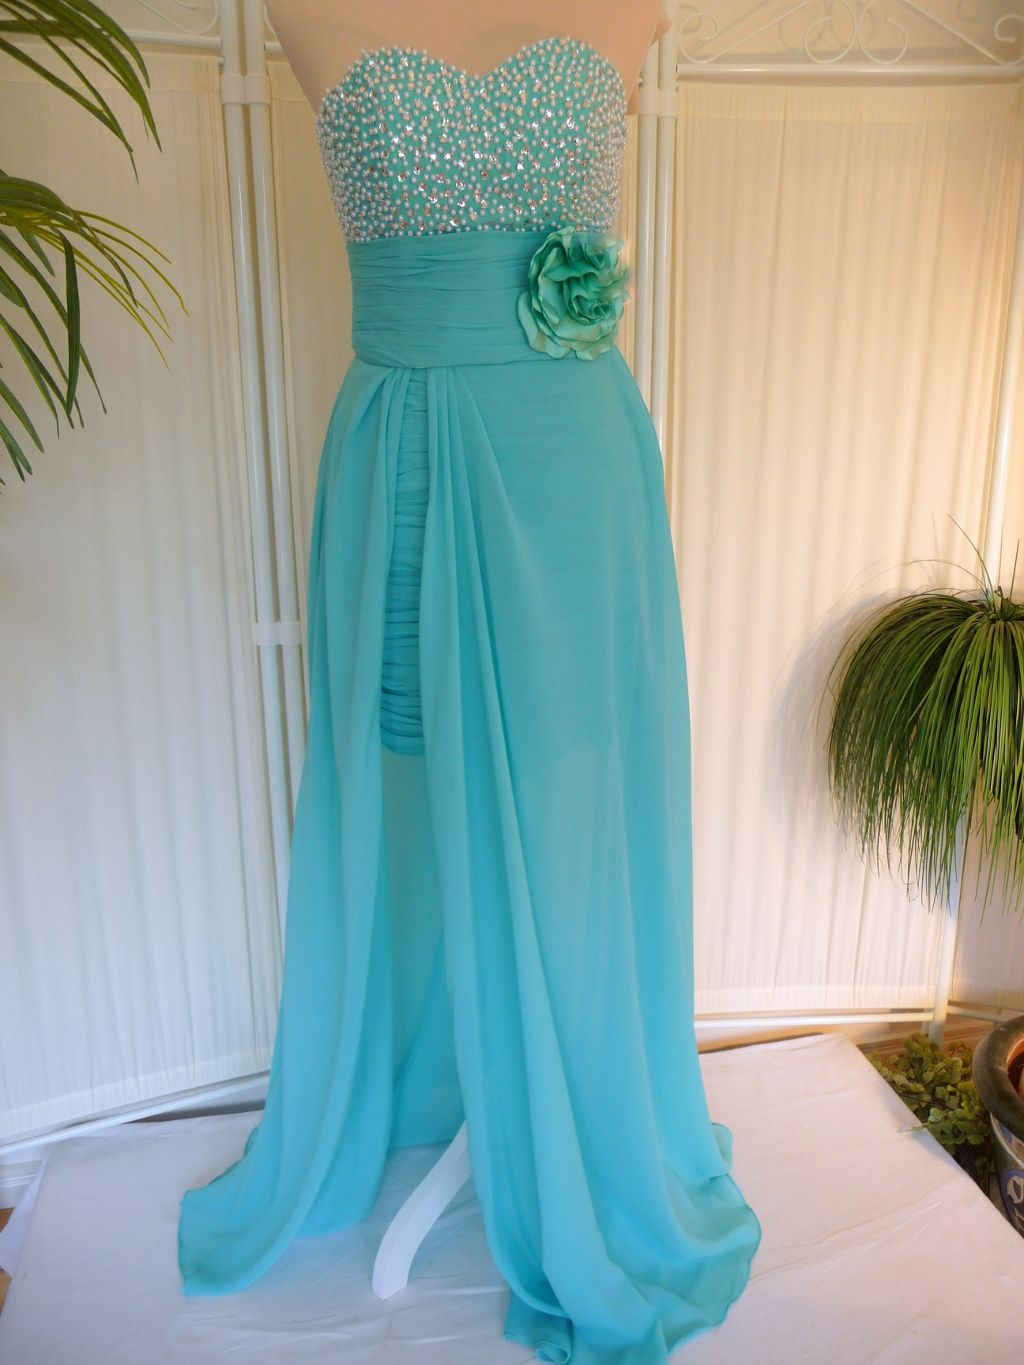 Beautiful Prom Dresses | 0804-Beautiful-beaded-formal-dress-evening-gown-prom-dress-blue-dress ...